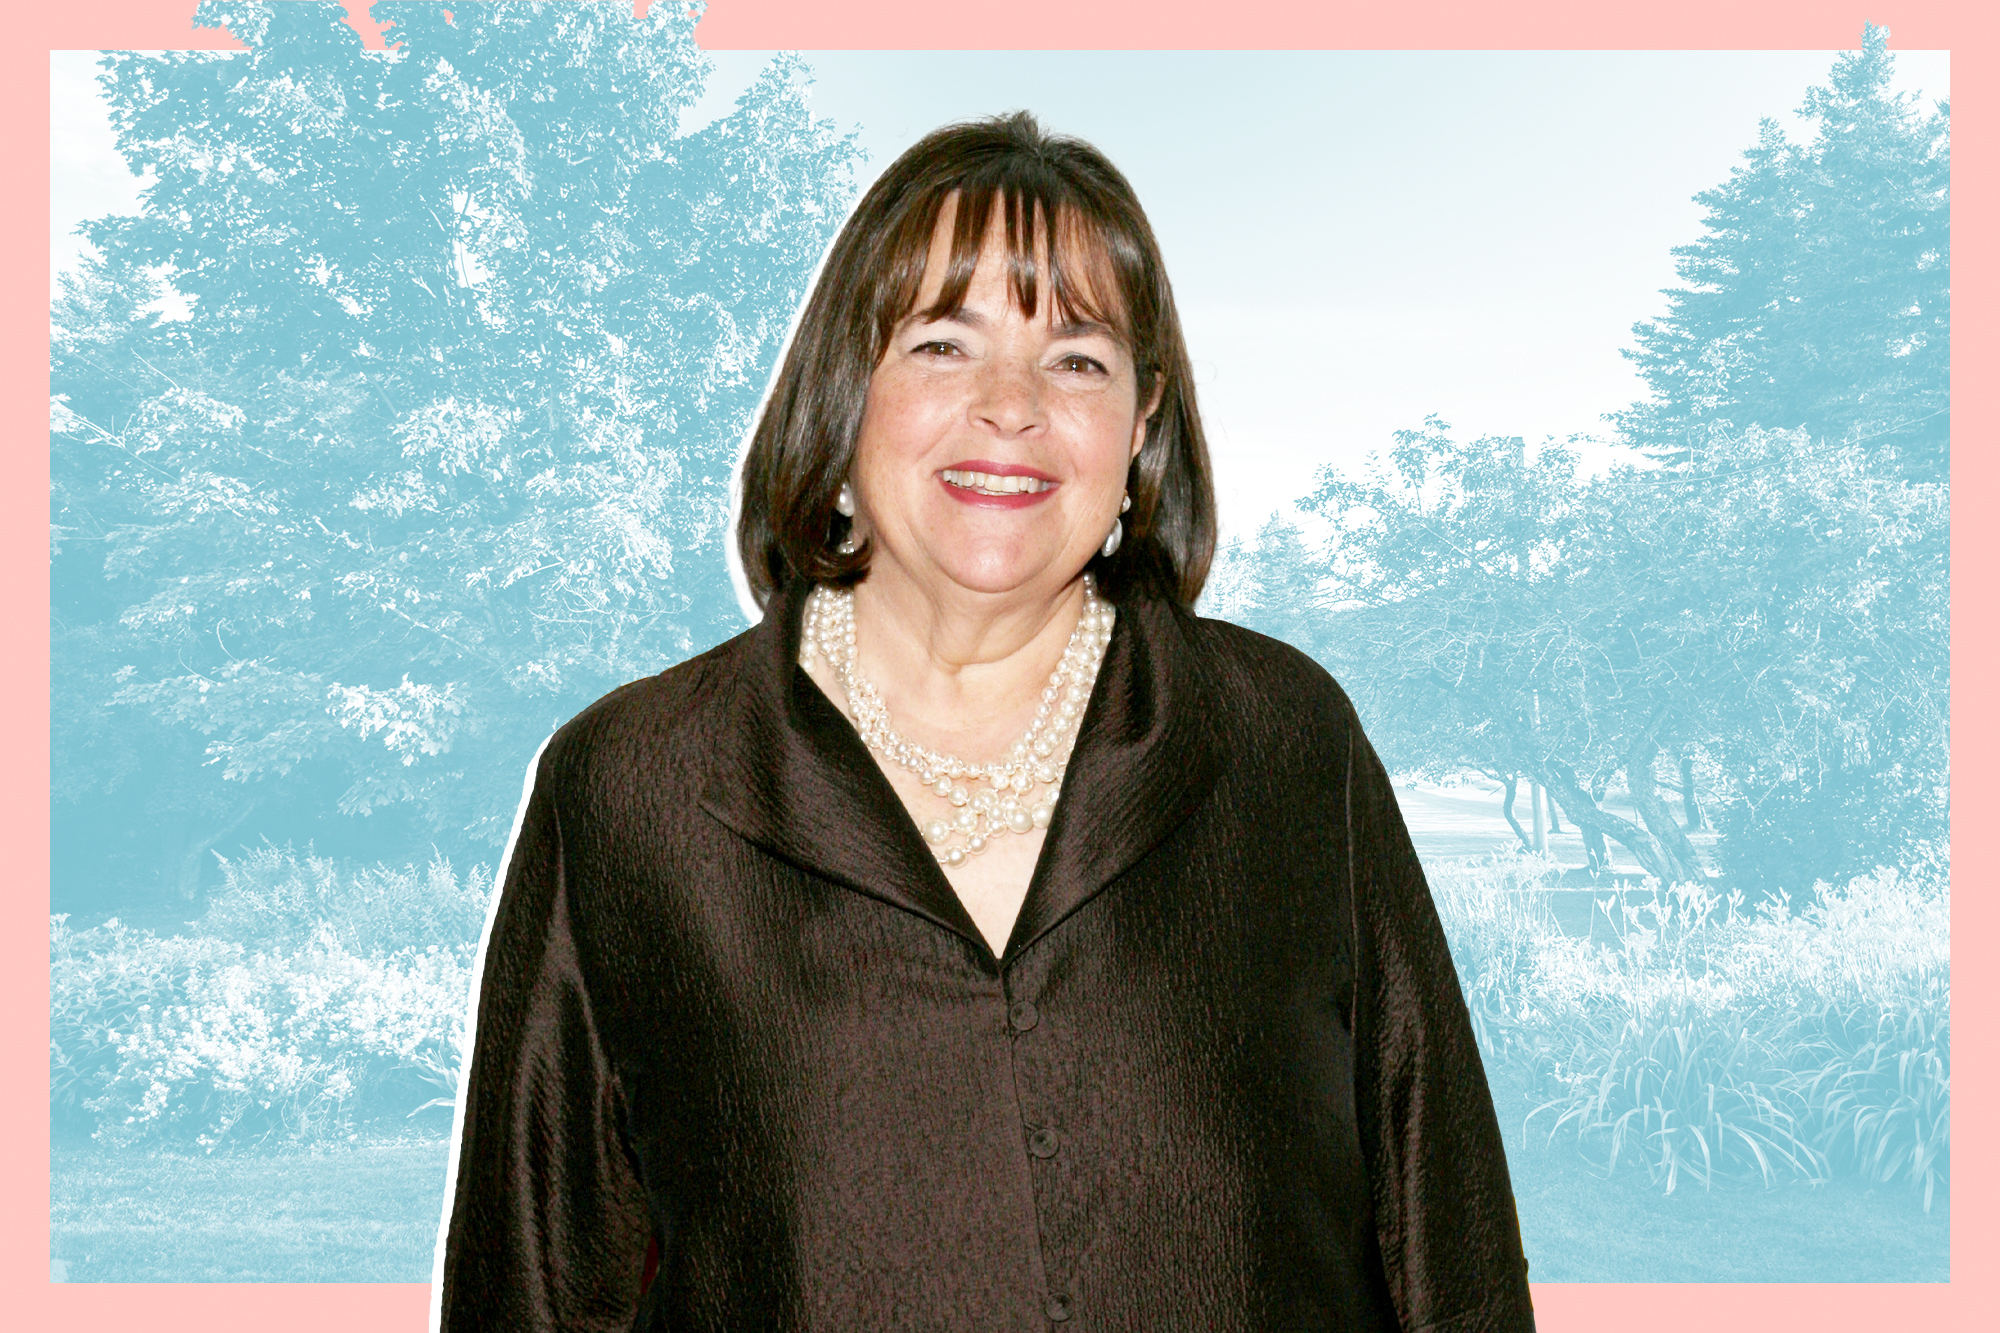 Ina Garten on a designed background that includes a photo of a garden